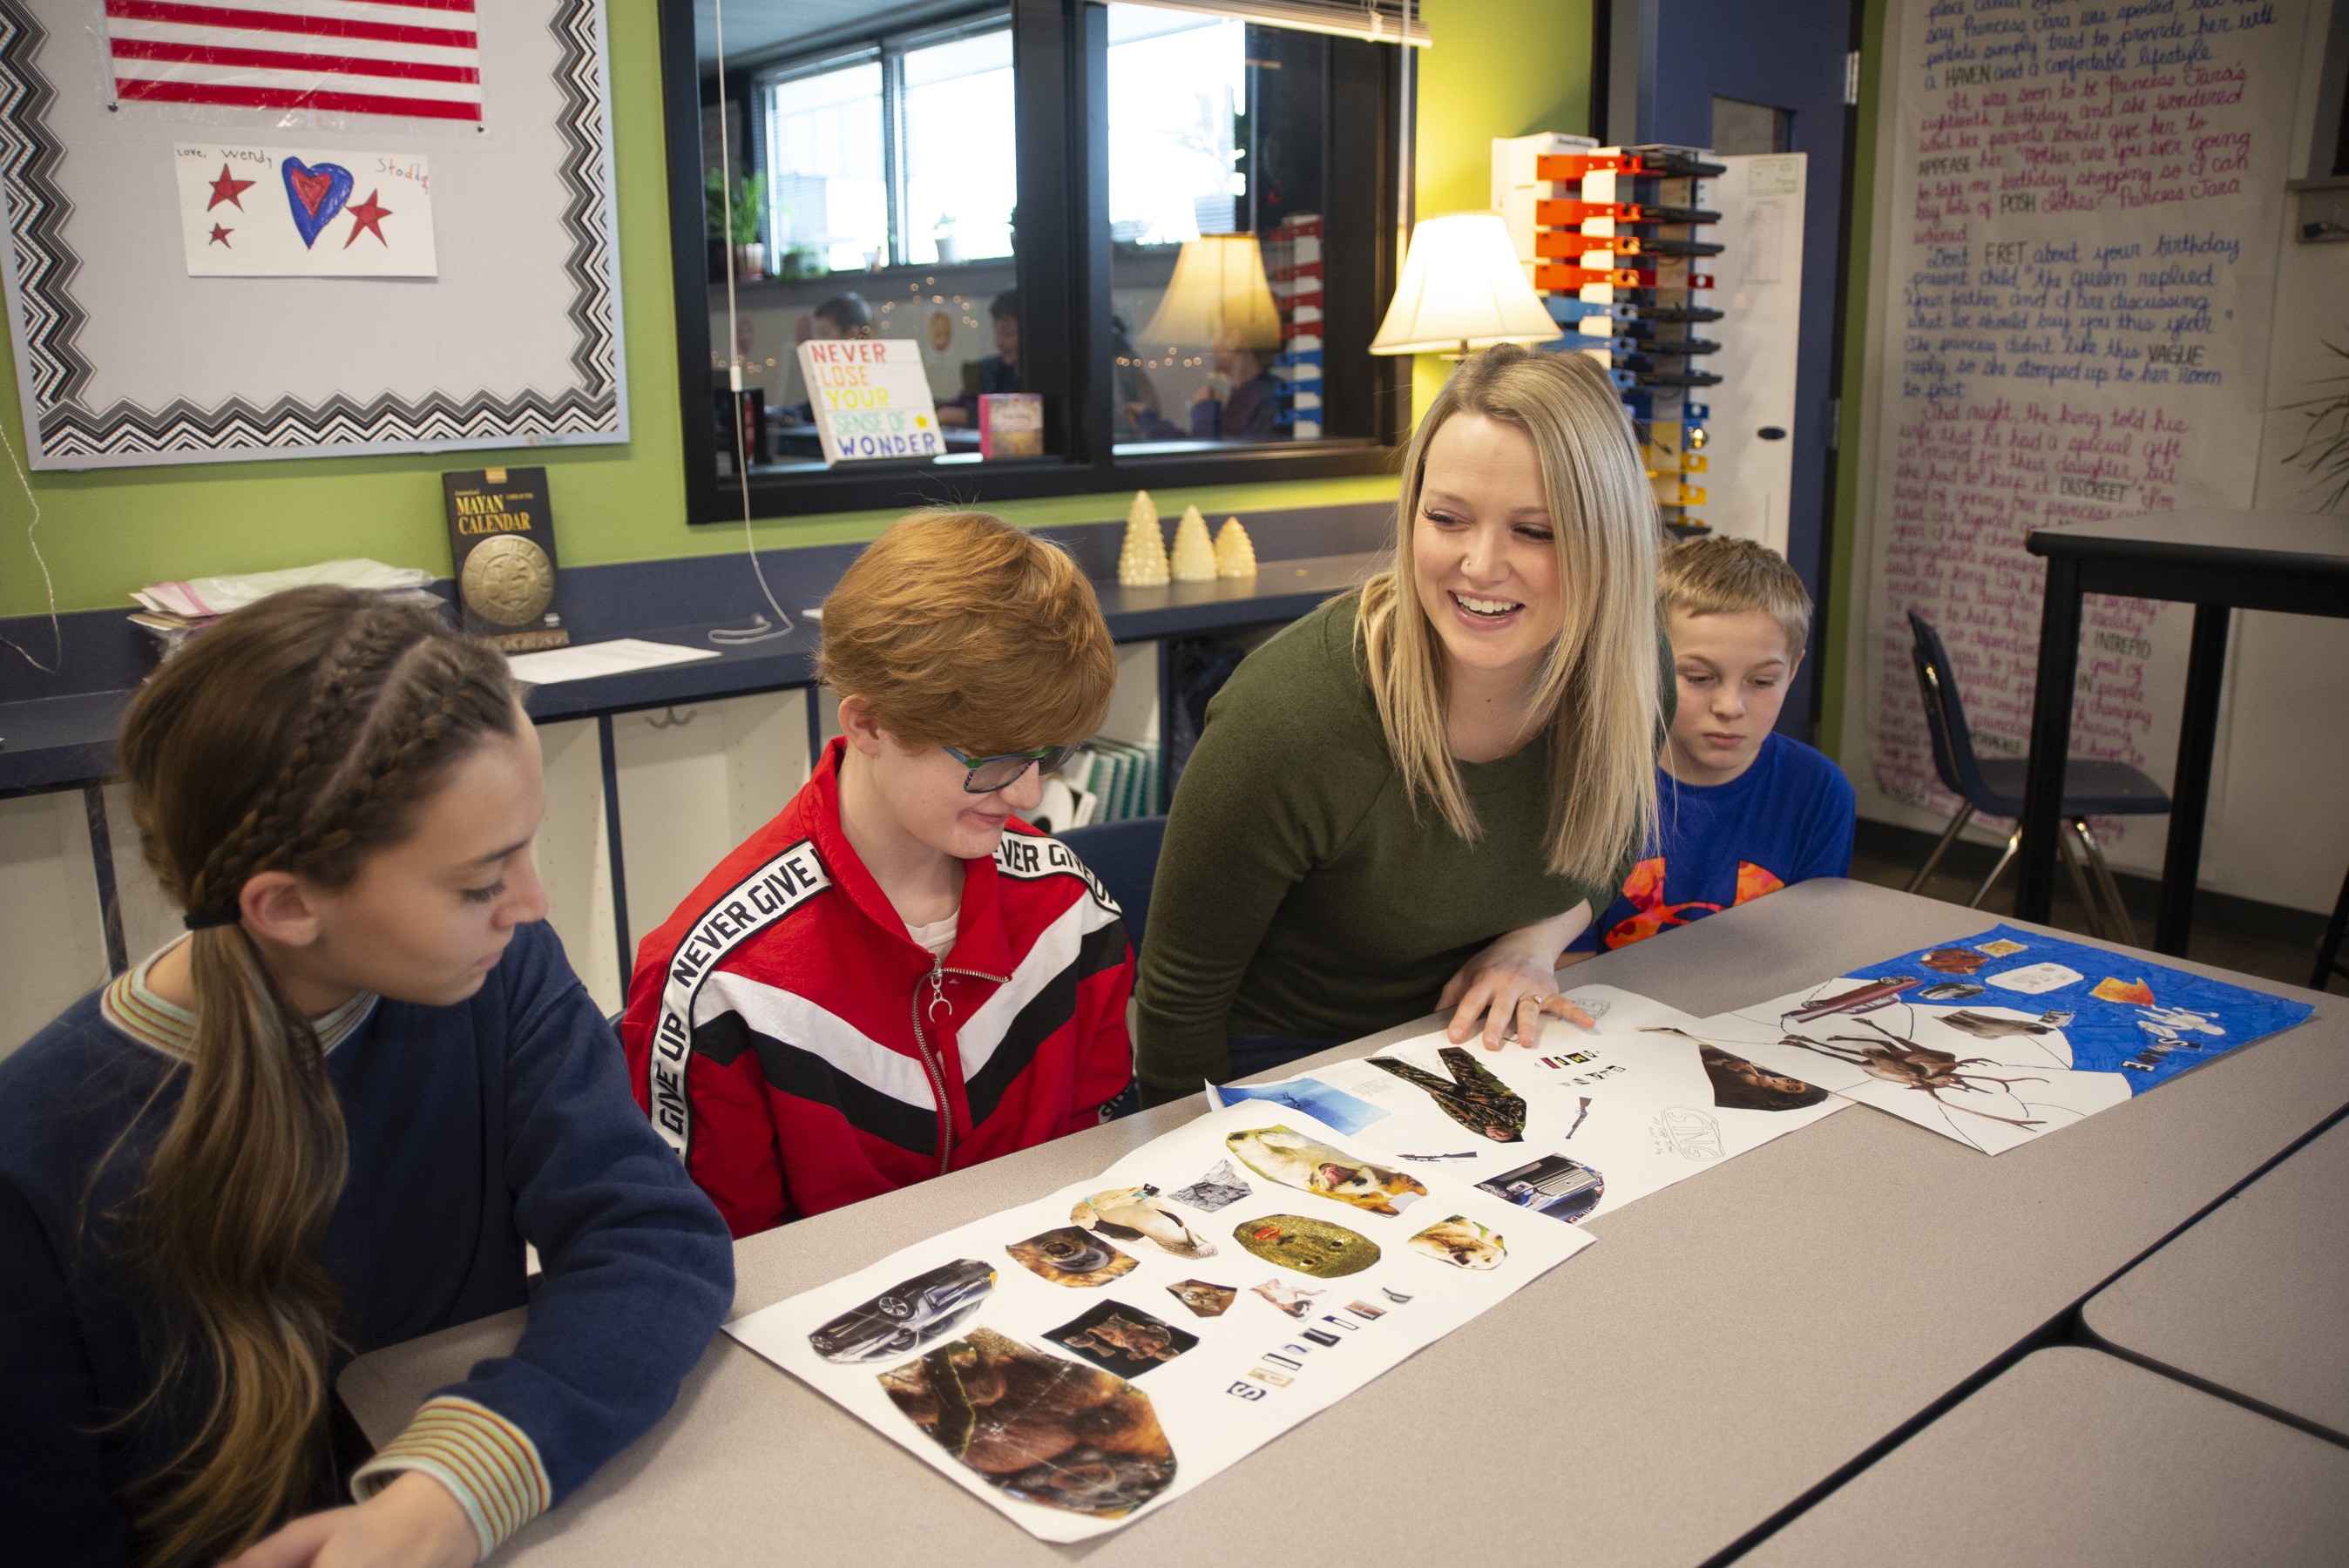 A teacher working with her students